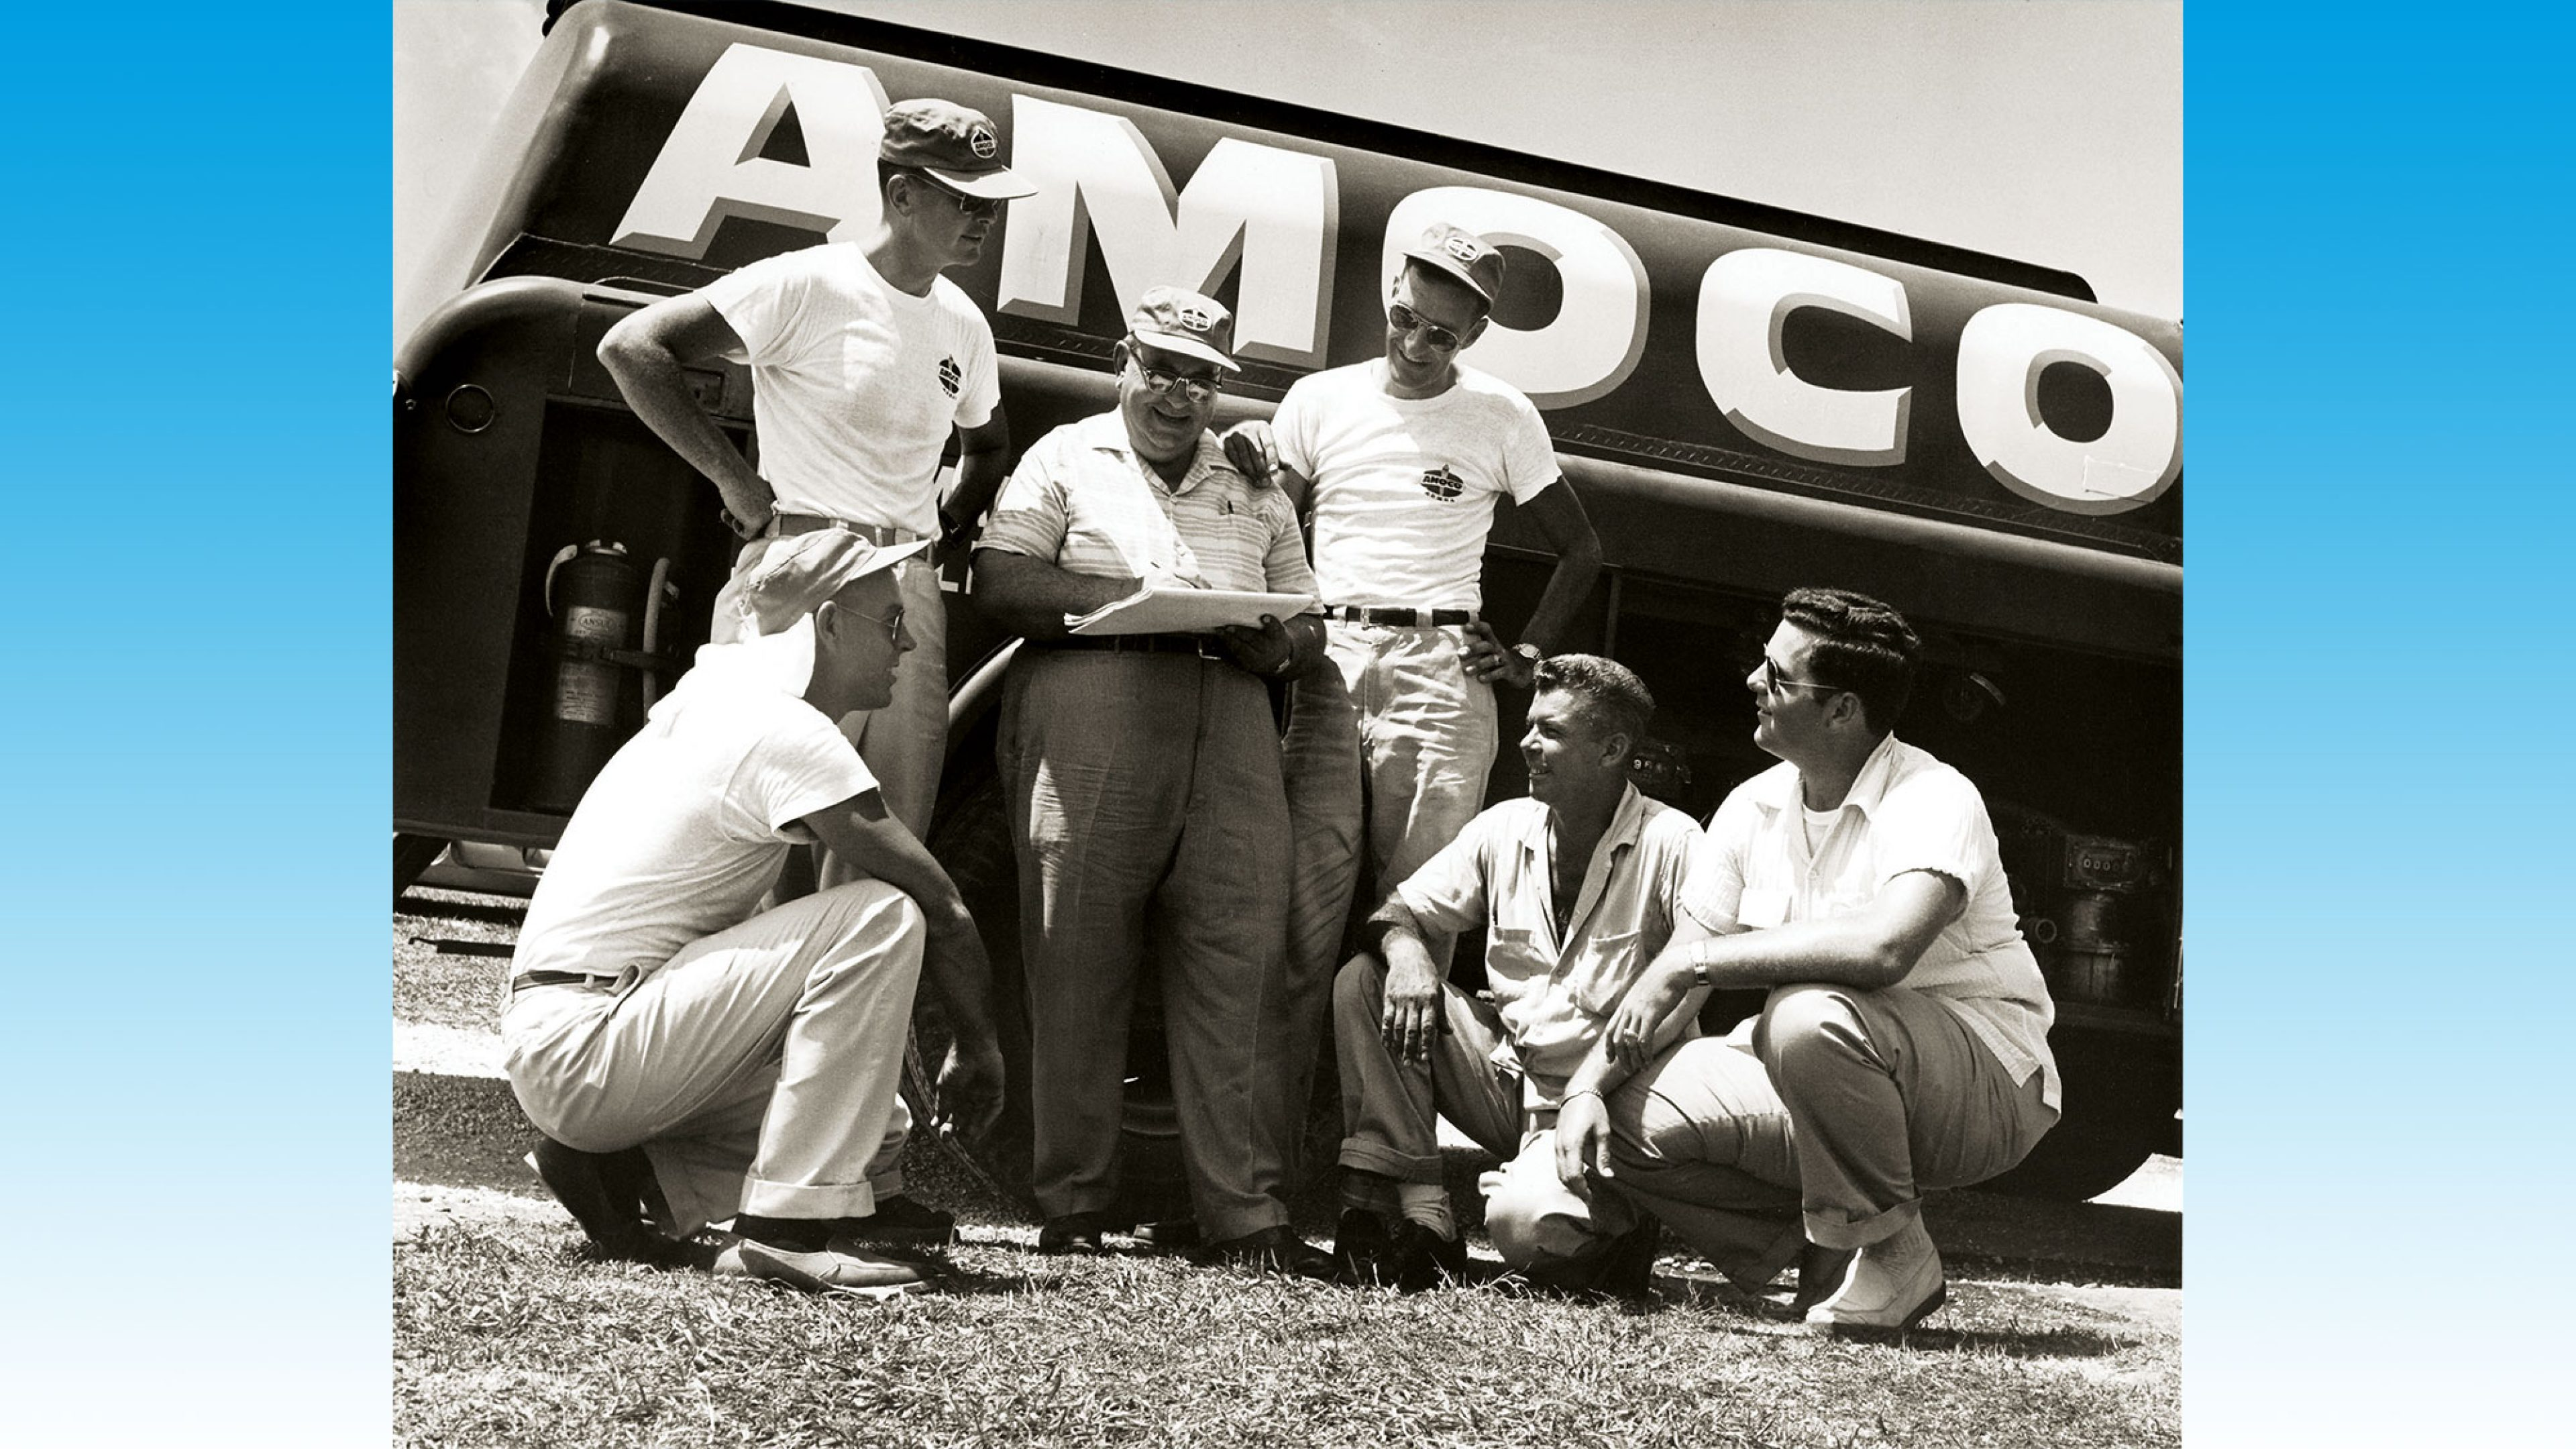 Amoco fuelling crew at the New Orleans to St Louis powerboat race in 1958